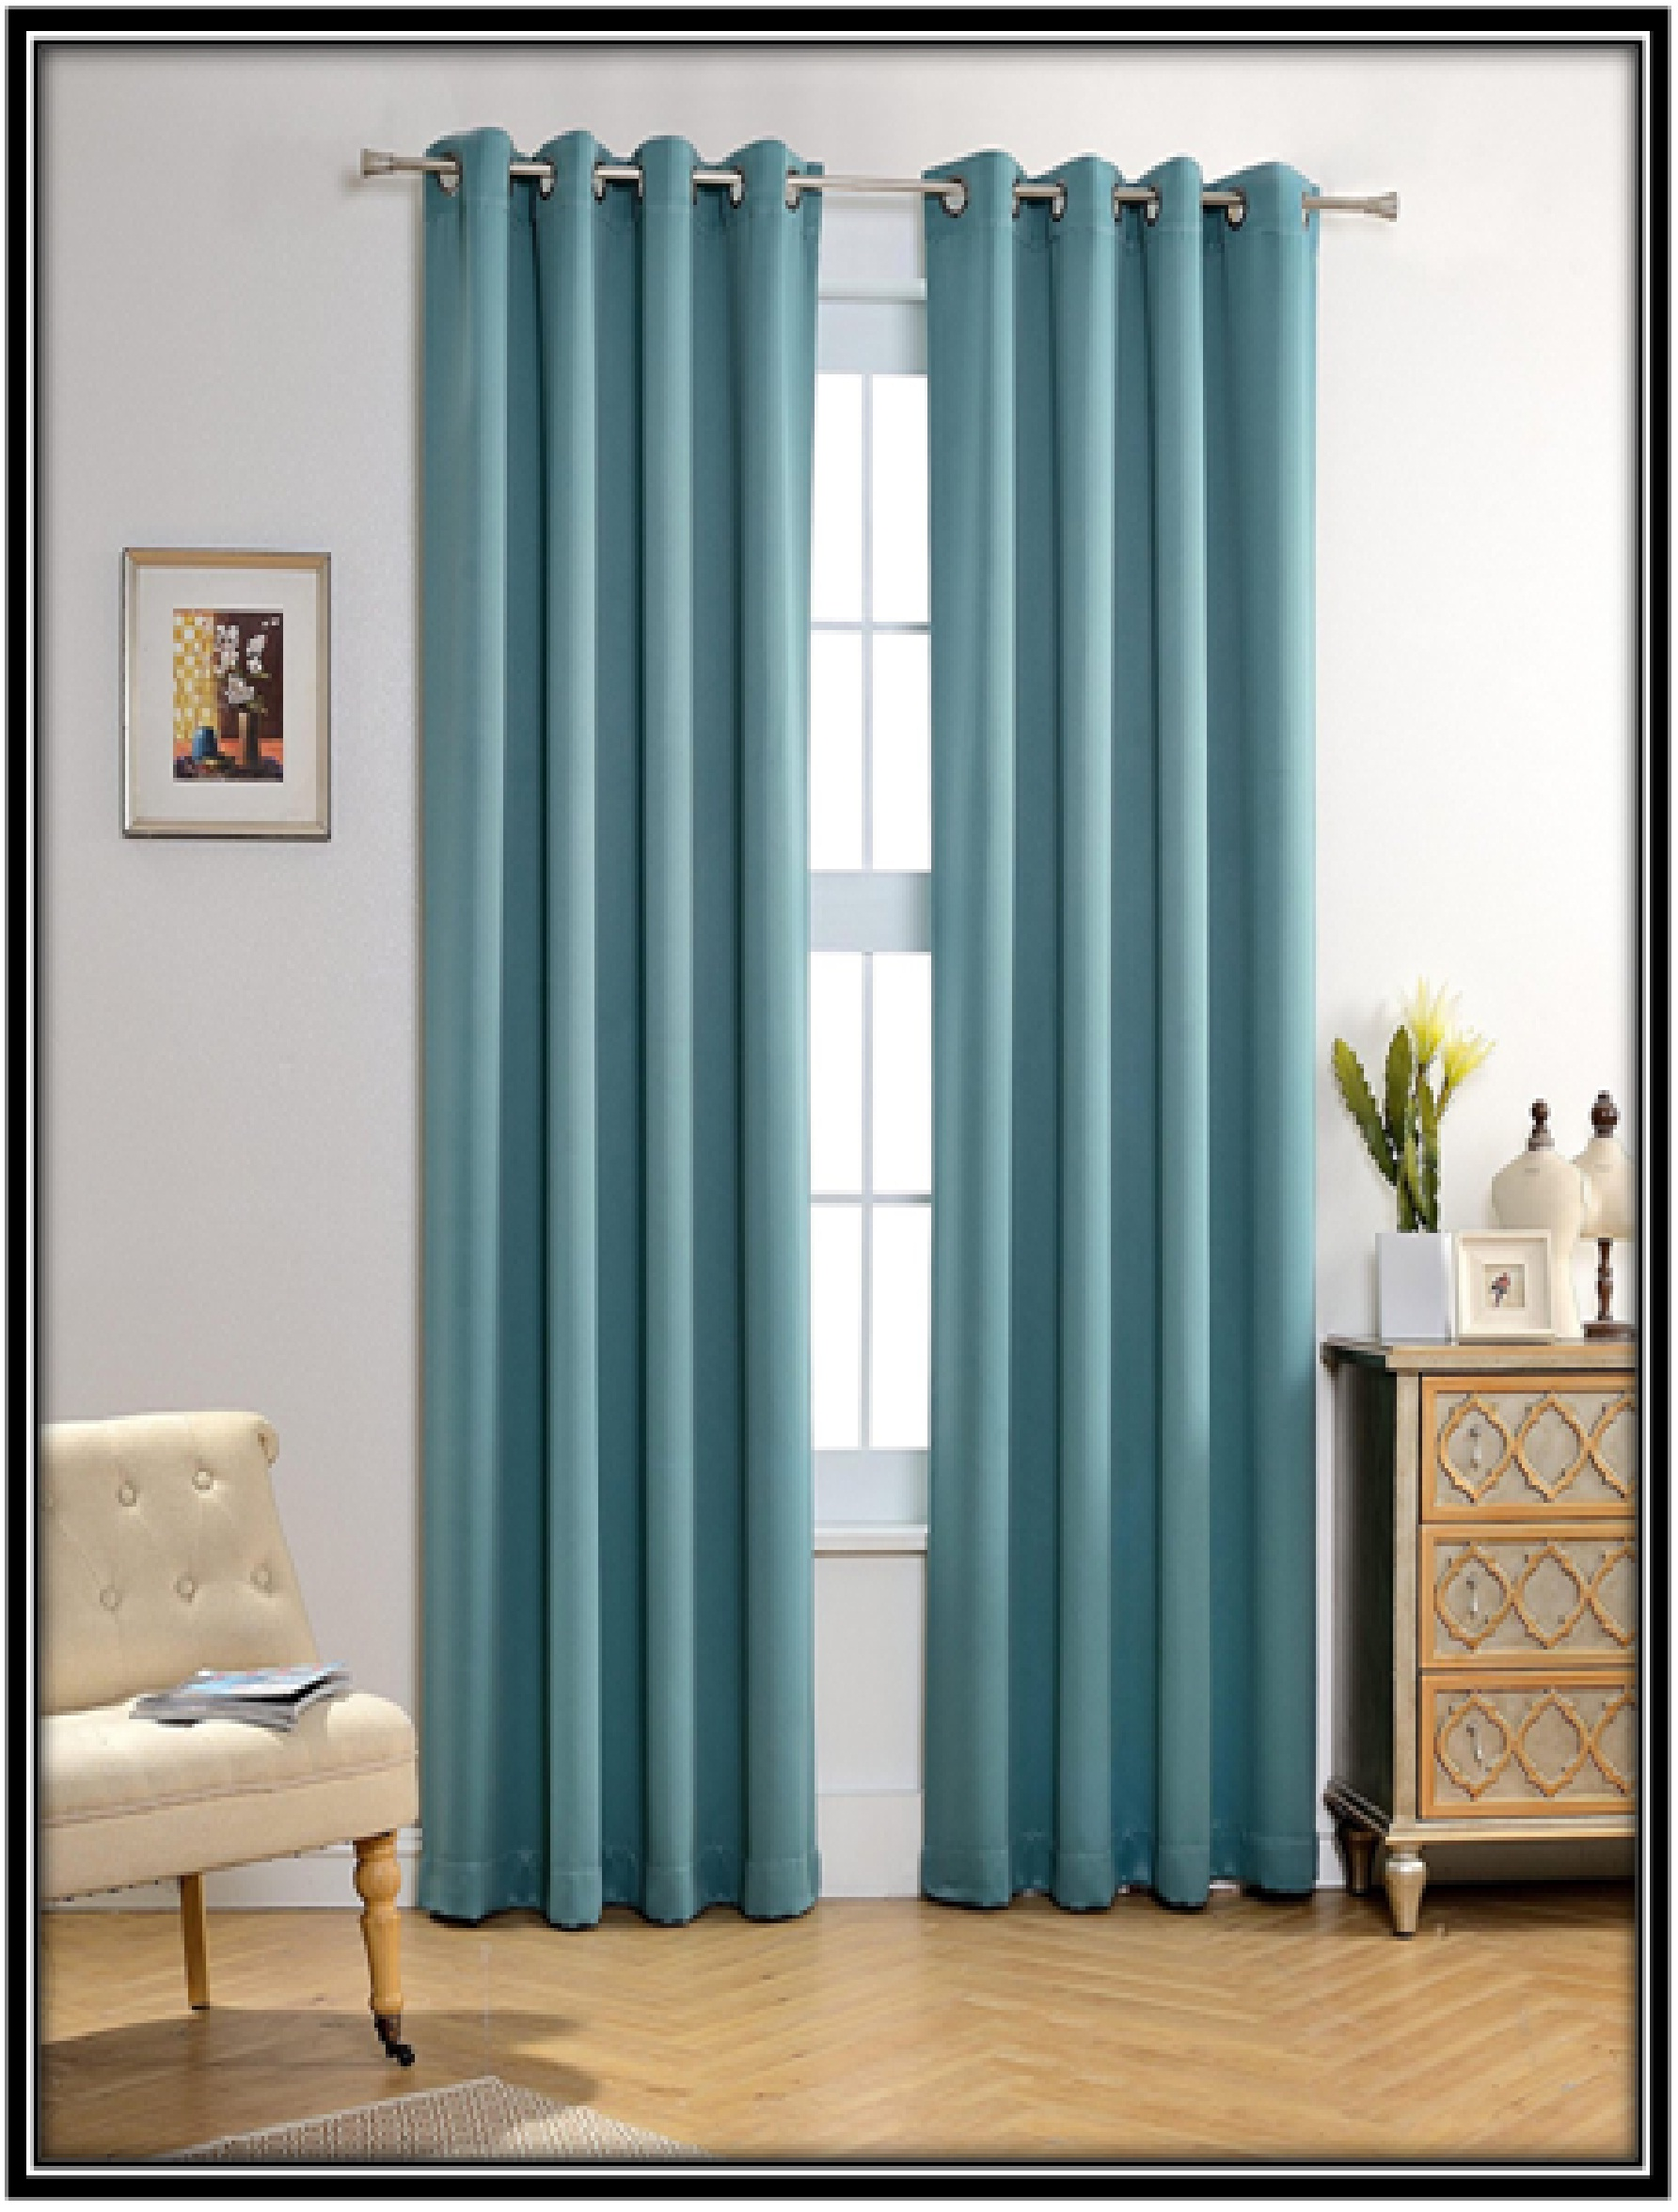 Curtains for the privacy - home decor idea